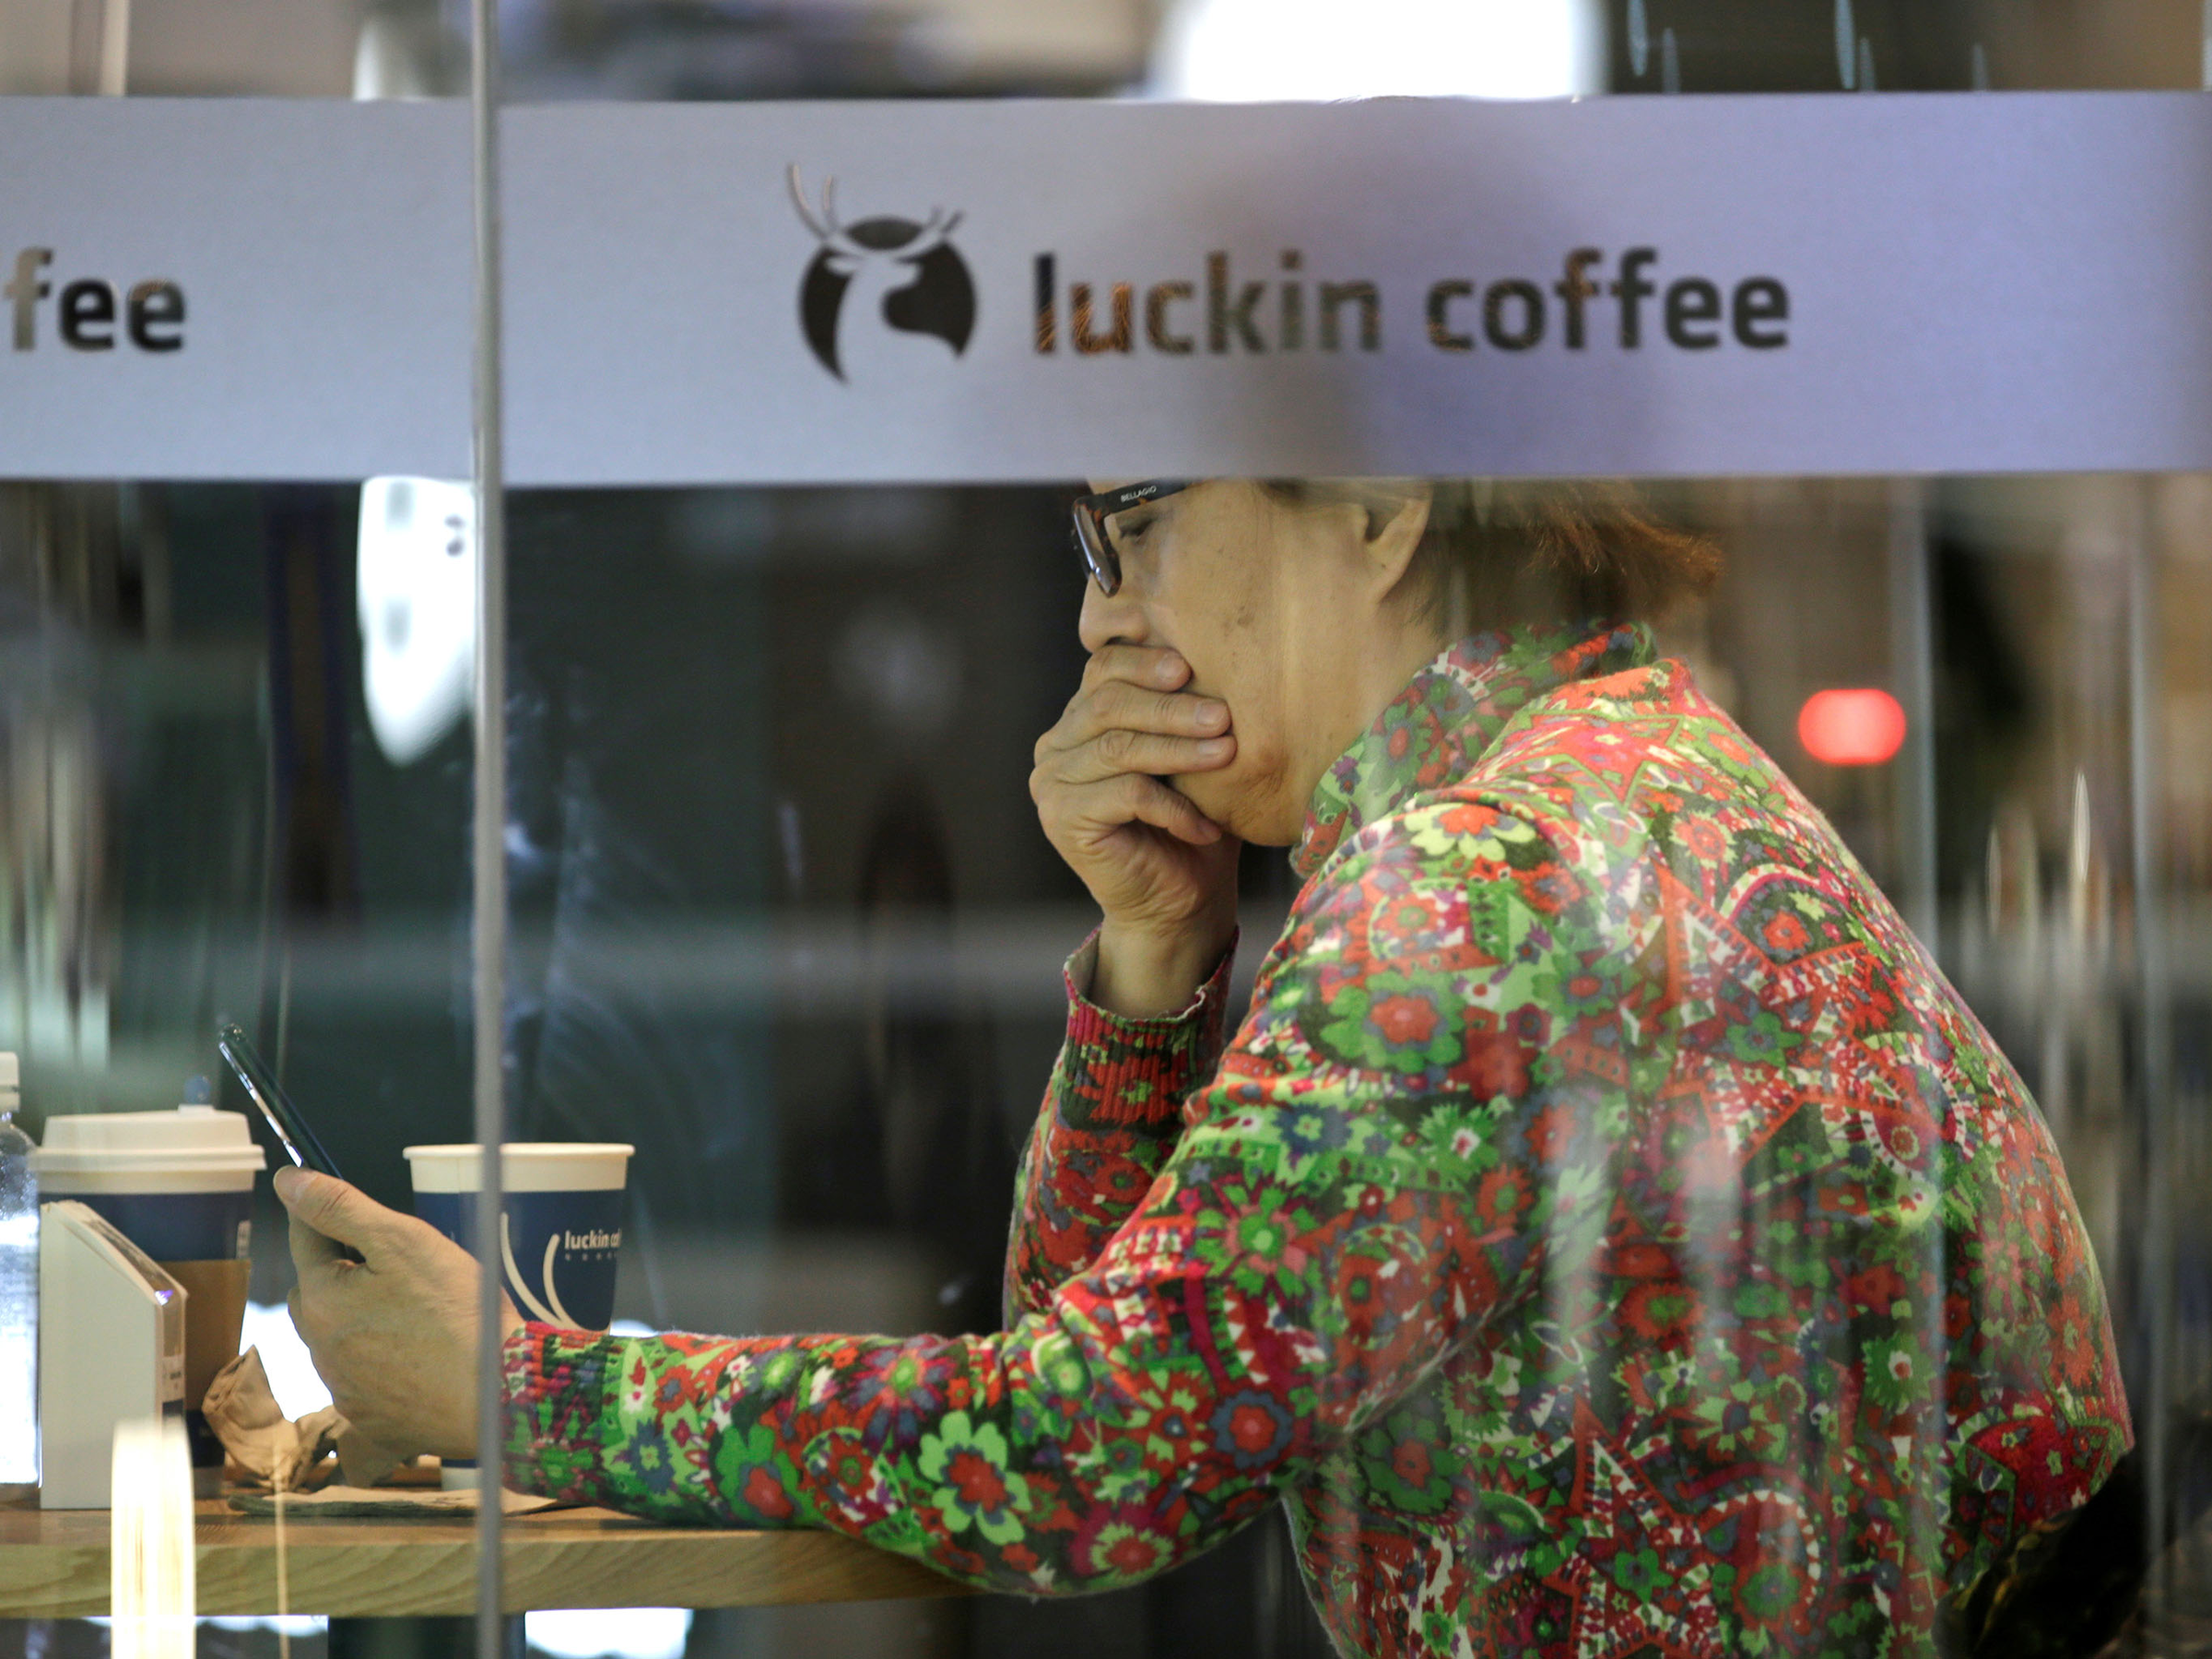 Starbucks rival Luckin Coffee faked nearly half of its